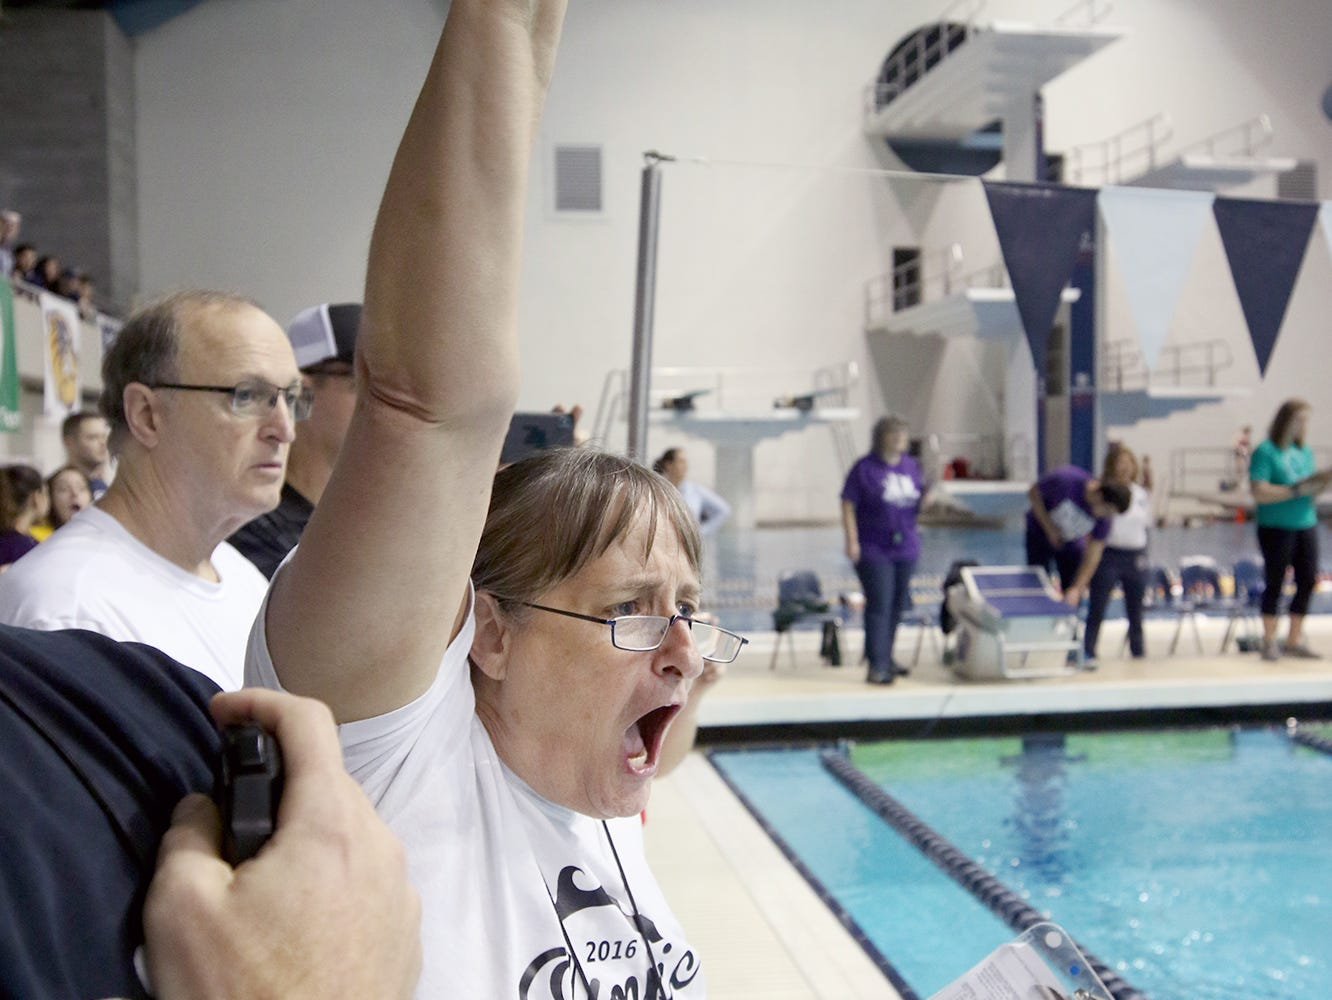 The North Kitsap Girls swim team won the team title at the 2018 2A Girls State Swim & Diving Championships on Saturday, November, 10, 2018 at the King County Aquatics Center, in Federal Way. Olympic assistant coach Patti Matthew cheers on Olympic swimmer Chloe Partsch in the girls 200 yard IM.